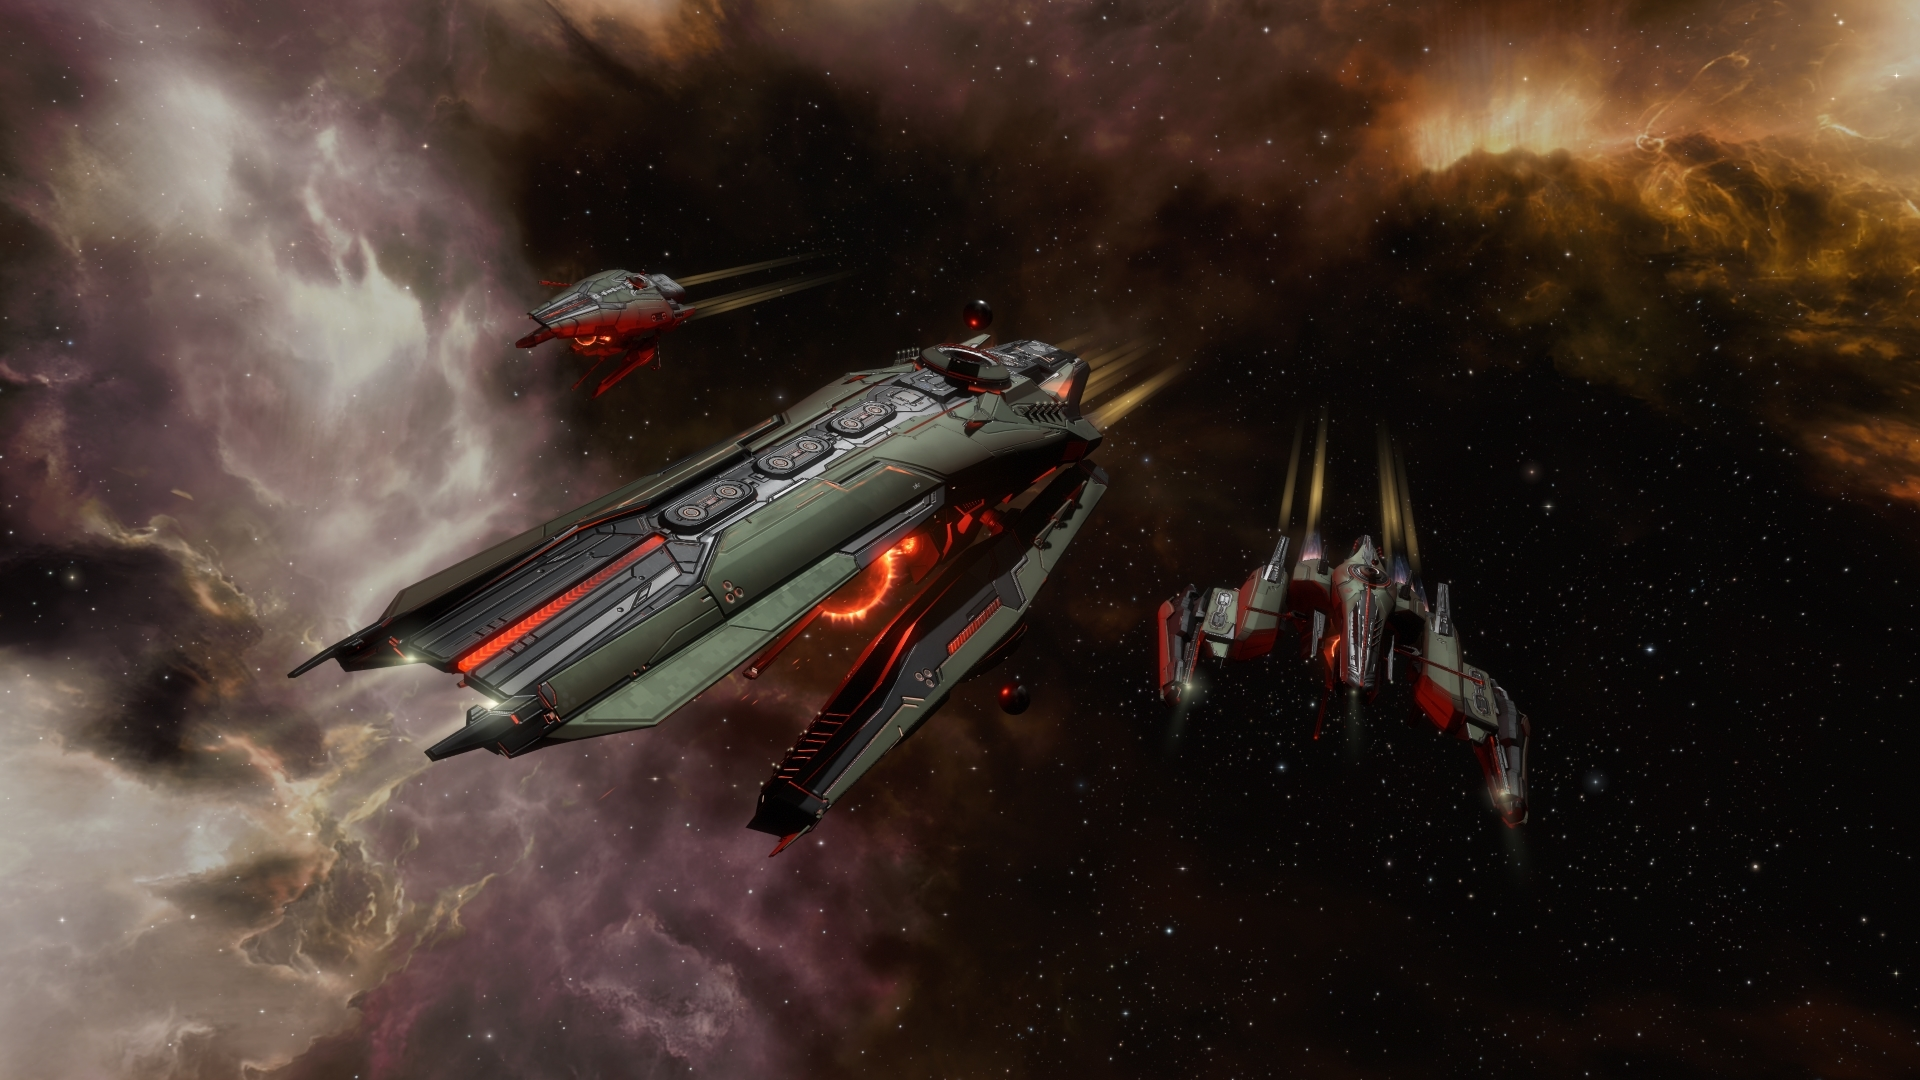 May 8 The next Eve Online expansion is fittingly titled Invasion